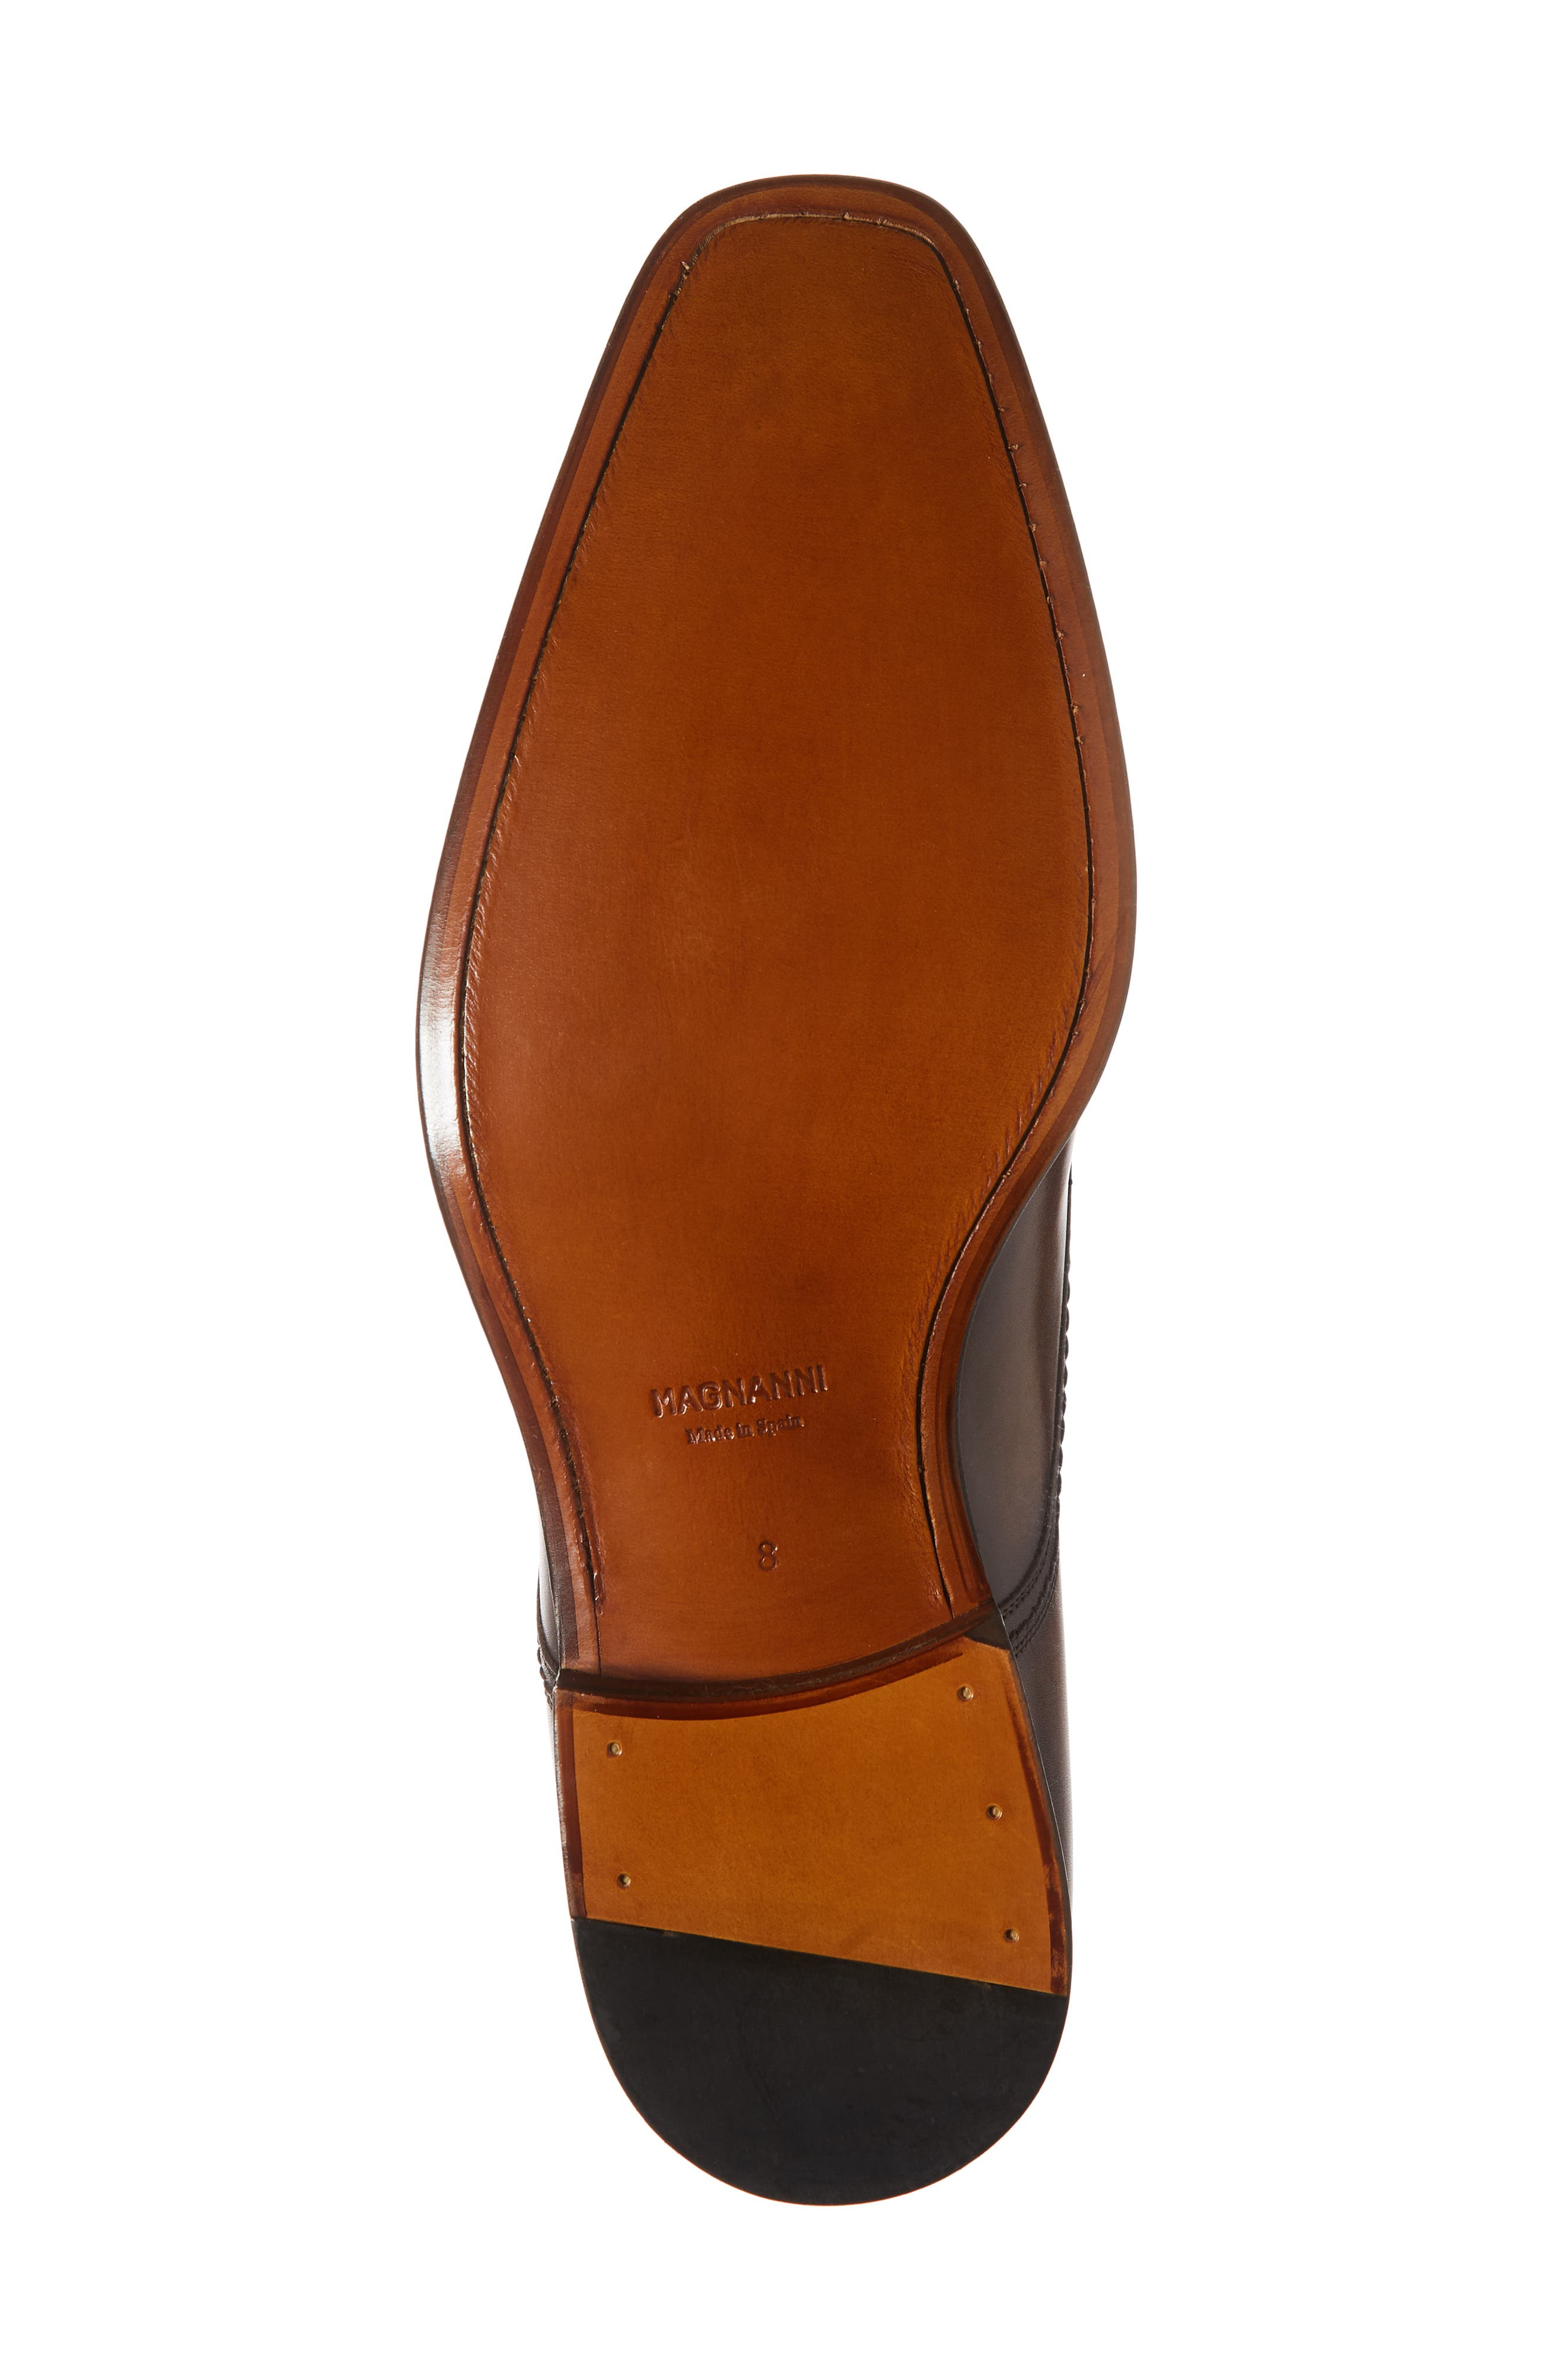 Landon Double Strap Monk Shoe,                             Alternate thumbnail 6, color,                             TOBACCO LEATHER